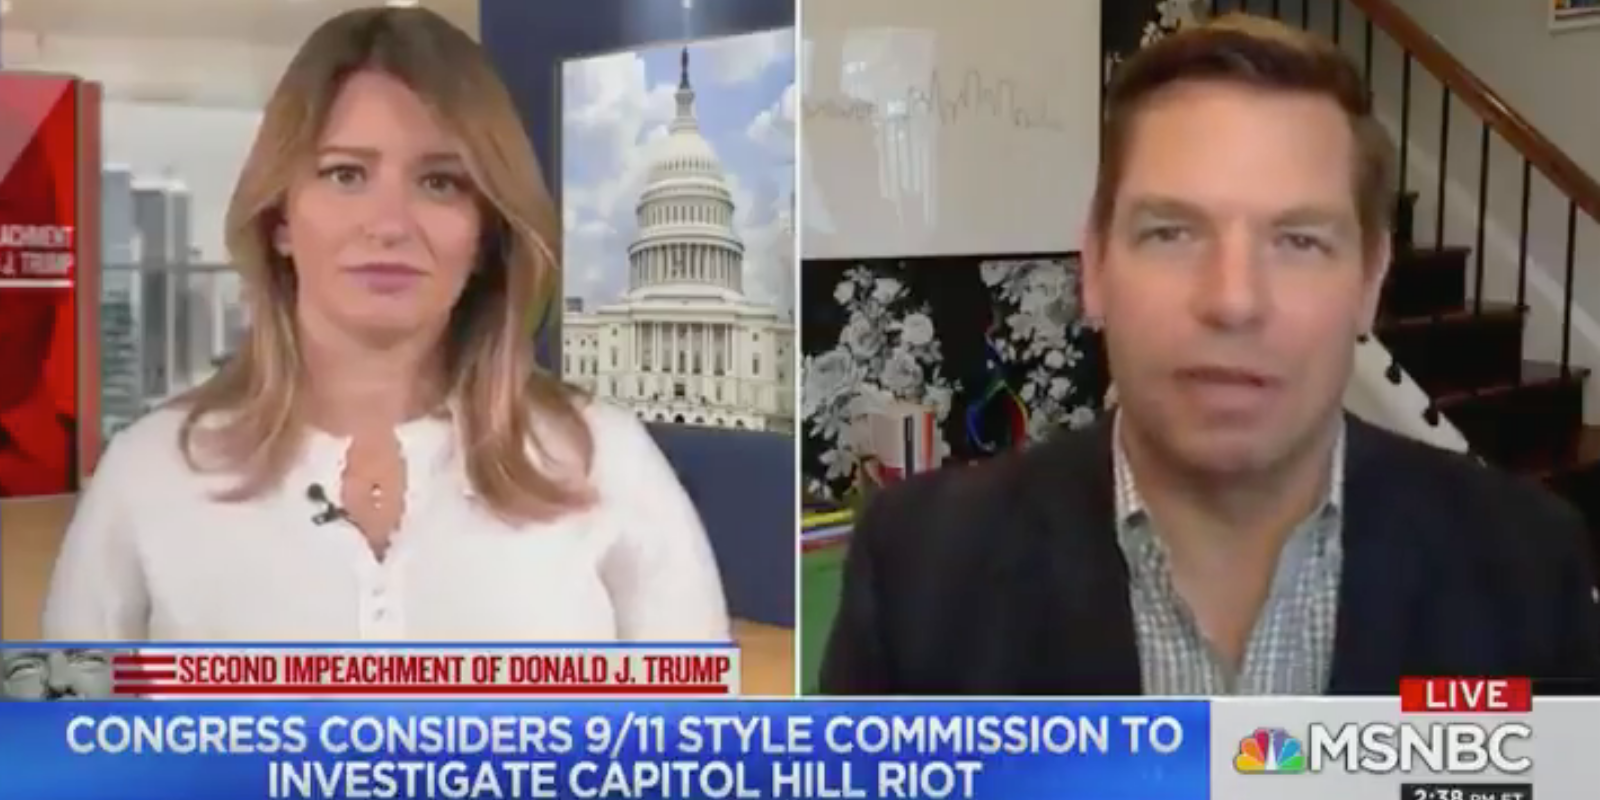 WATCH: Rep. Swalwell says US needs a '9/11-style commission' as well as a 'white nationalism task force'